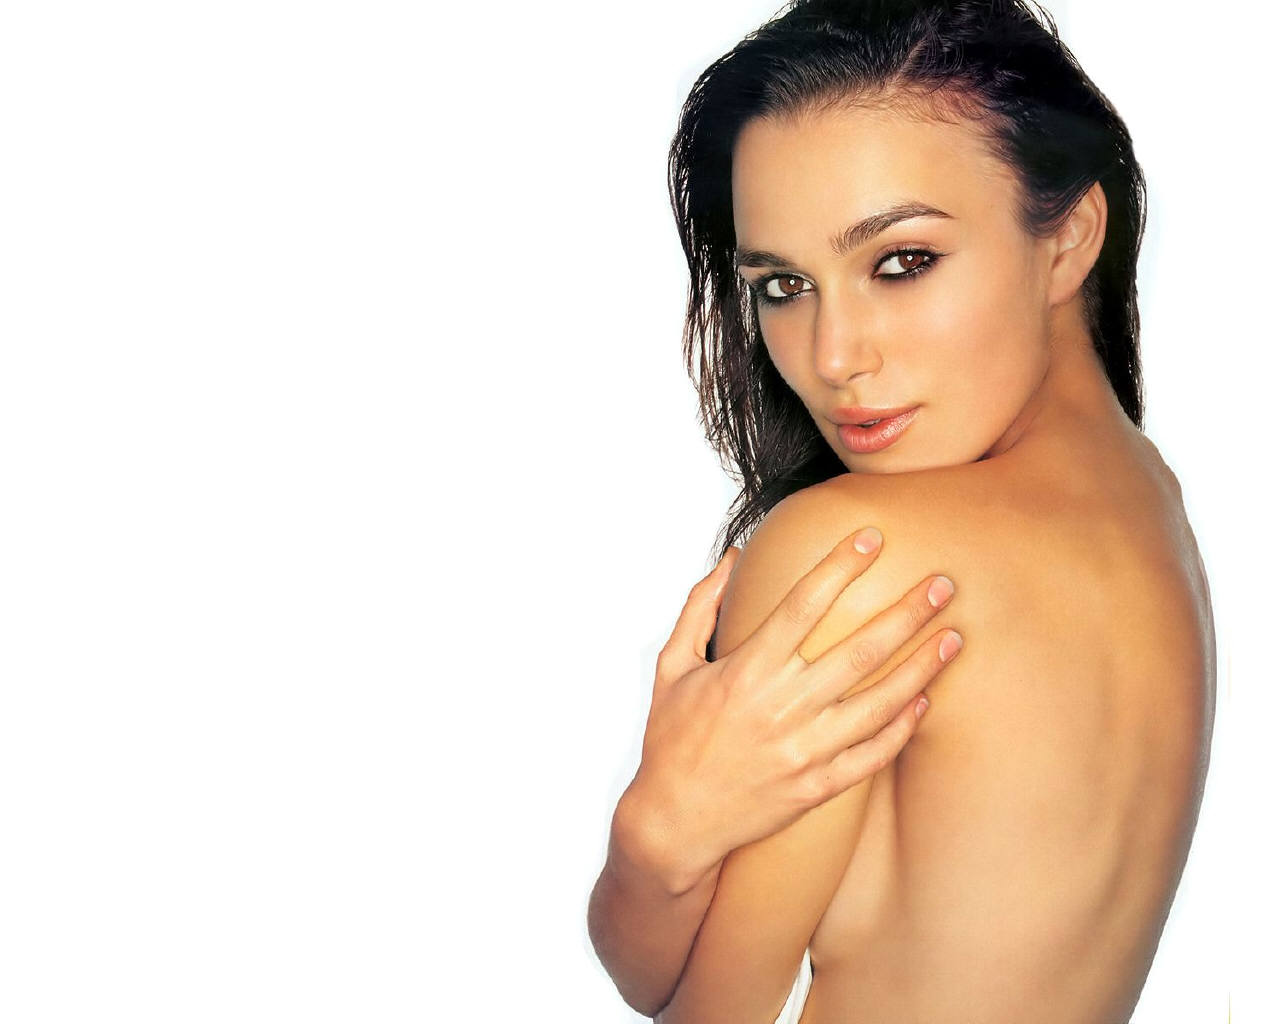 Here you can easily get more hot wallpapers of Keira Knightley